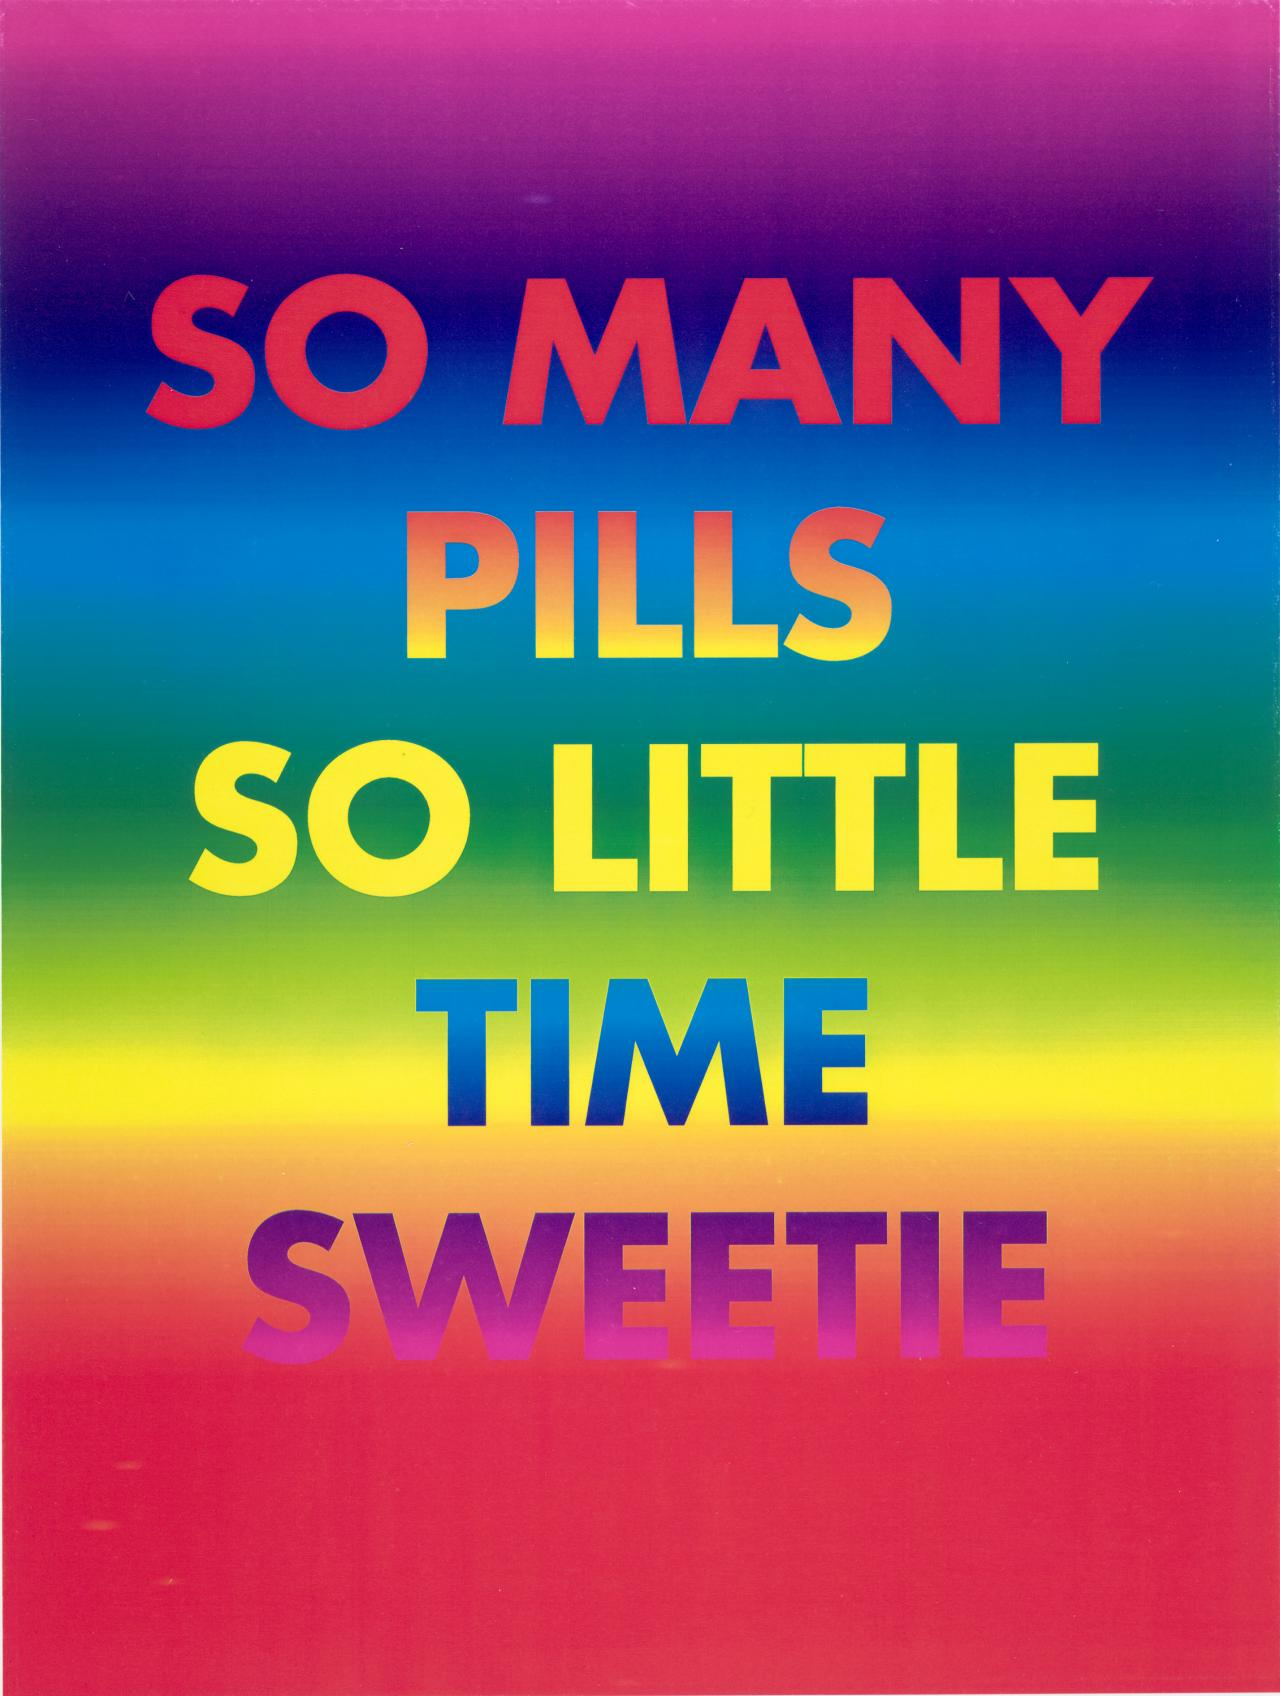 So many pills so little time sweetie